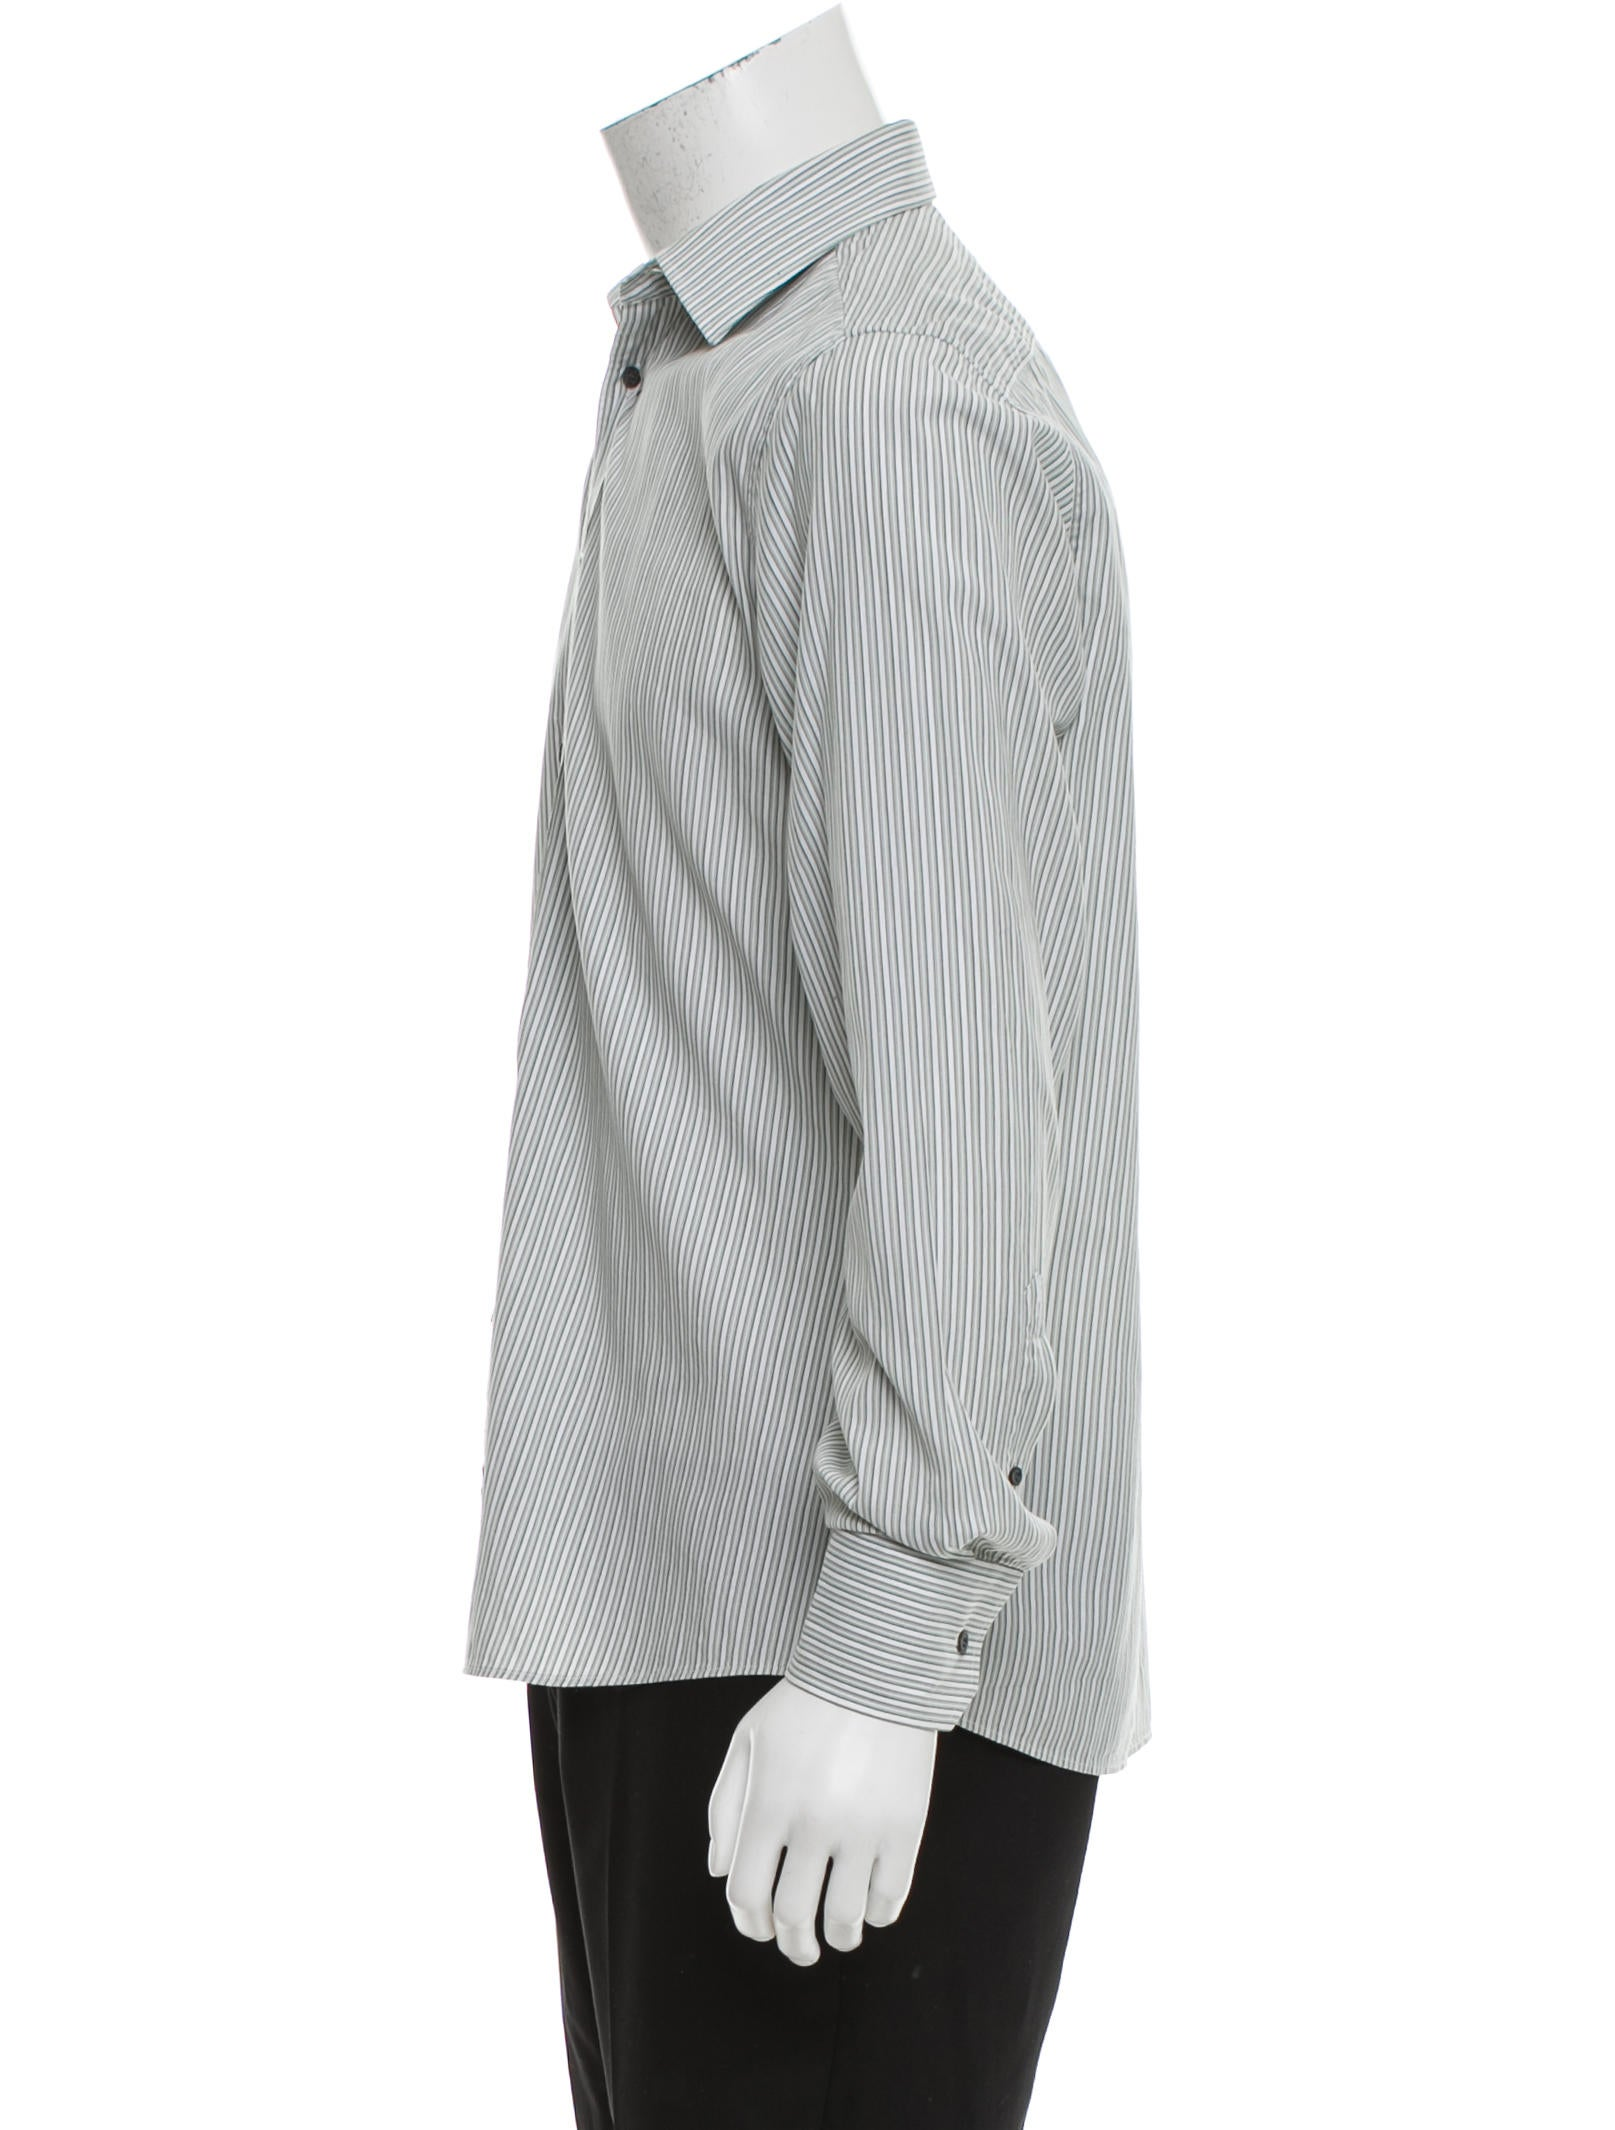 Gucci Tie Button-Up Shirt - Clothing - GUC144587 | The RealReal